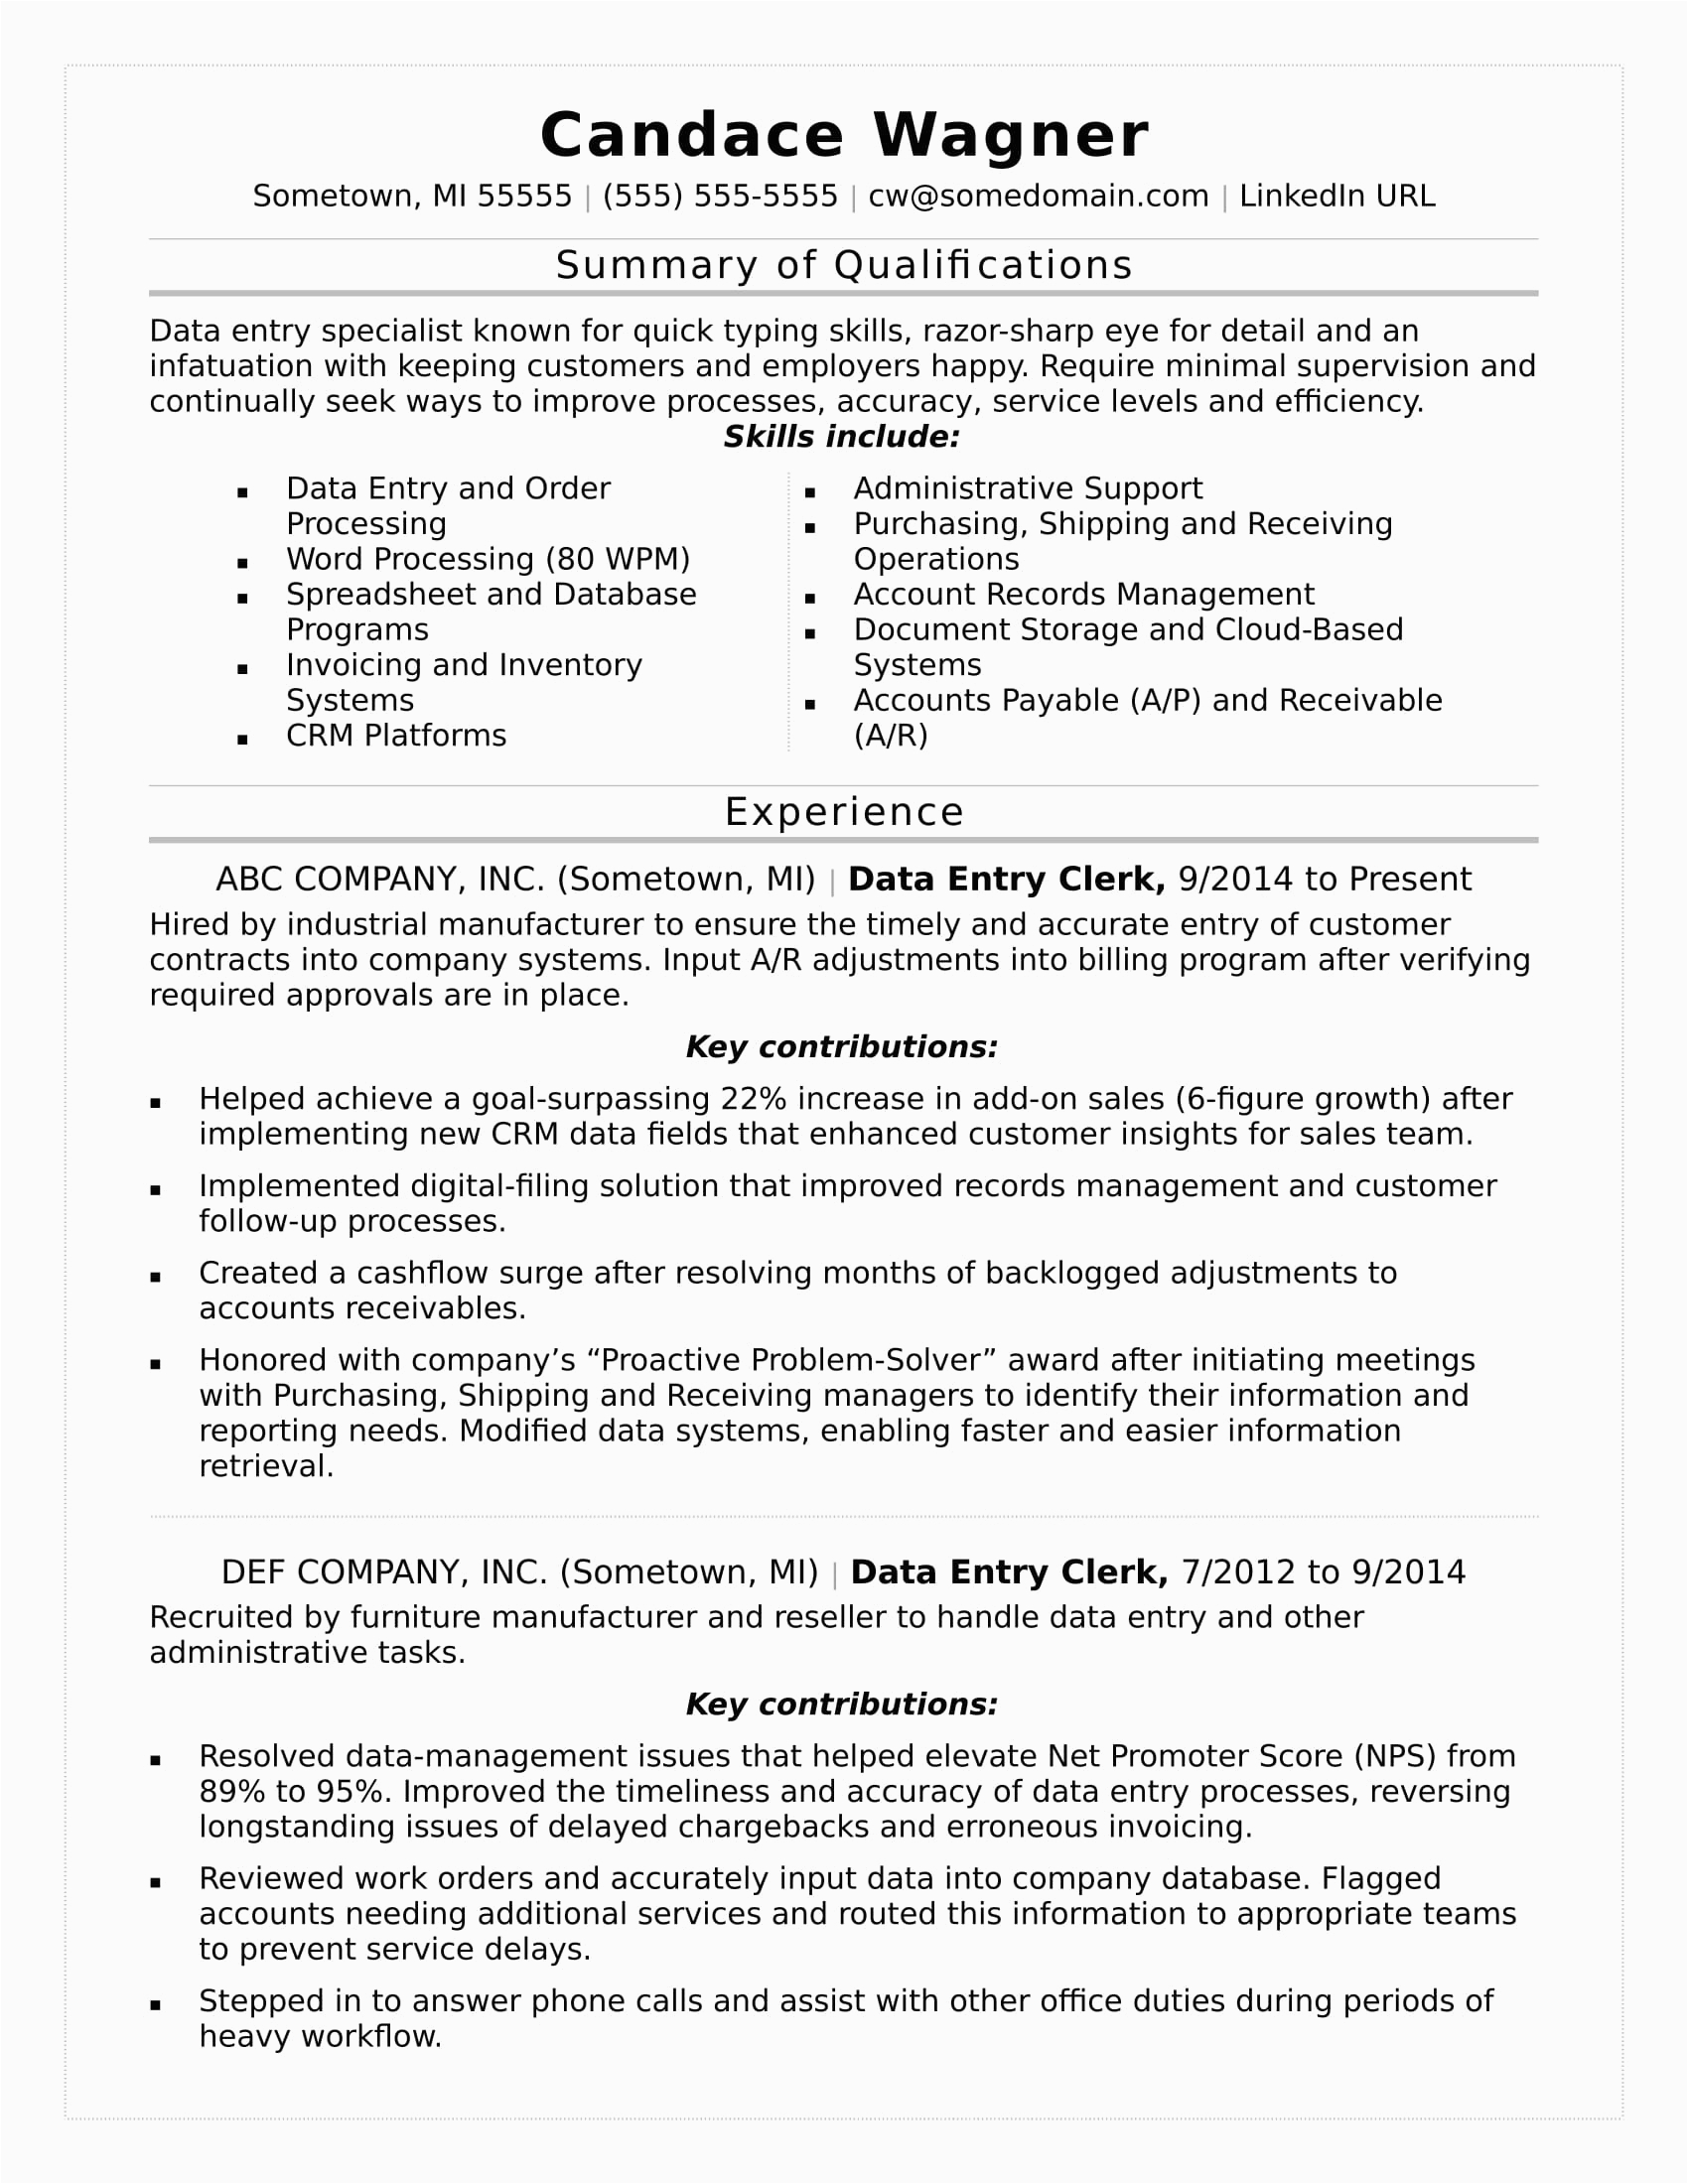 cover letter for data entry clerk with